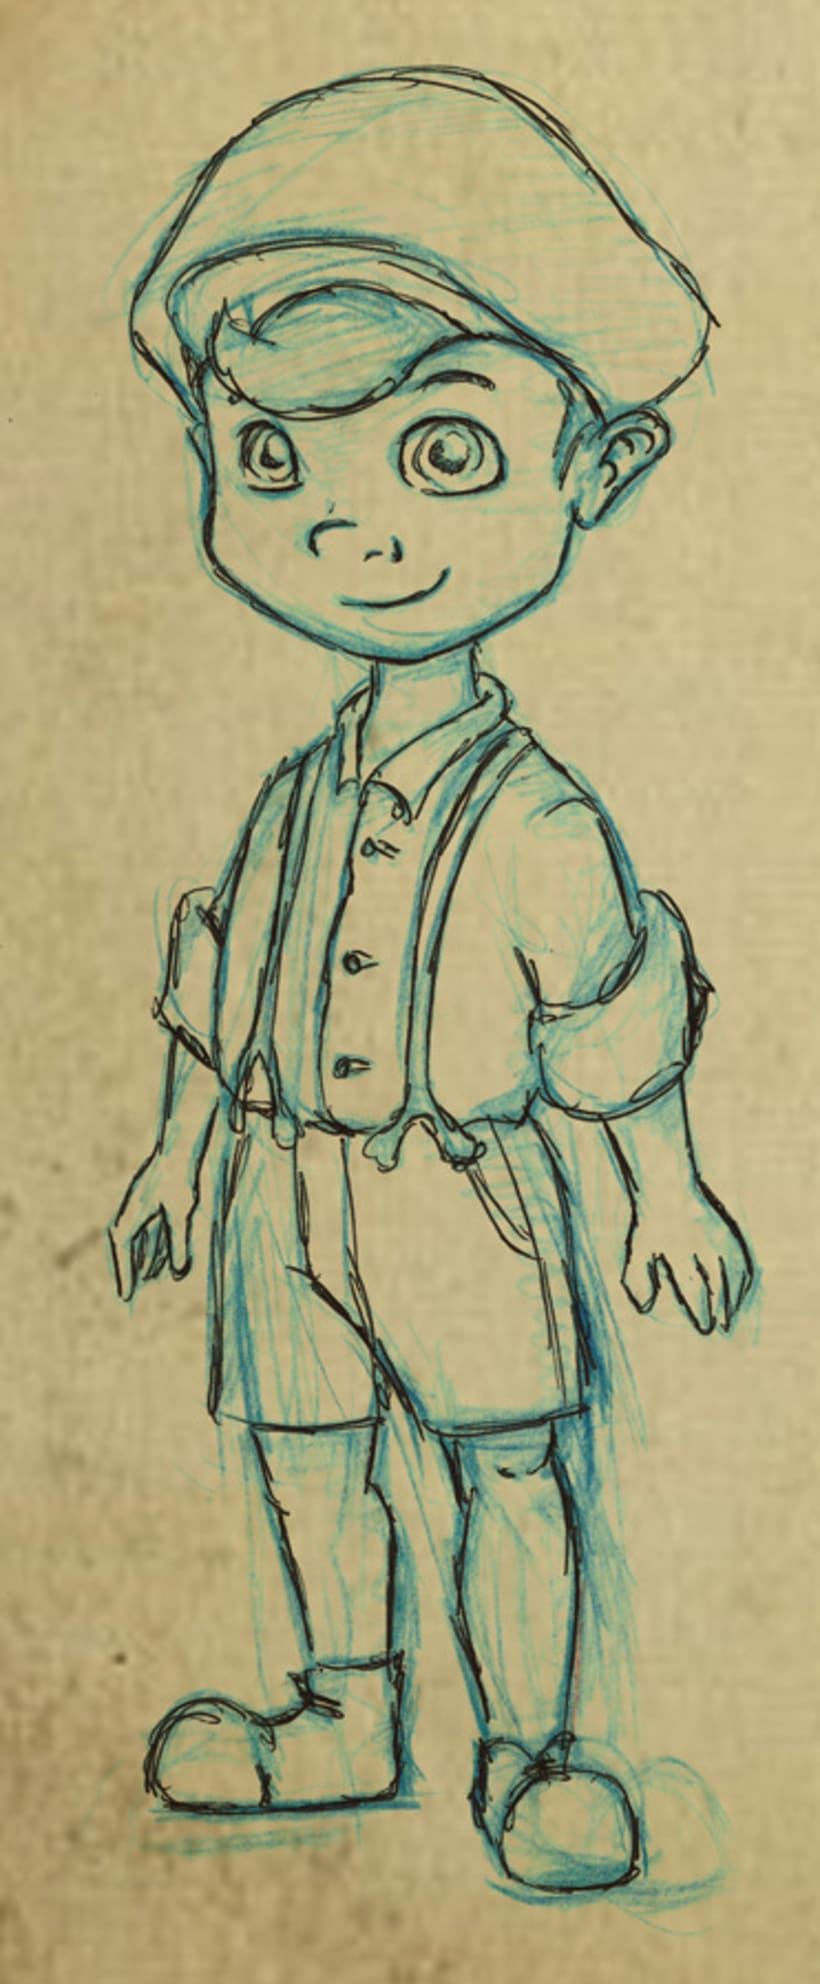 BOY - CHARACTER DESIGN 2012 6